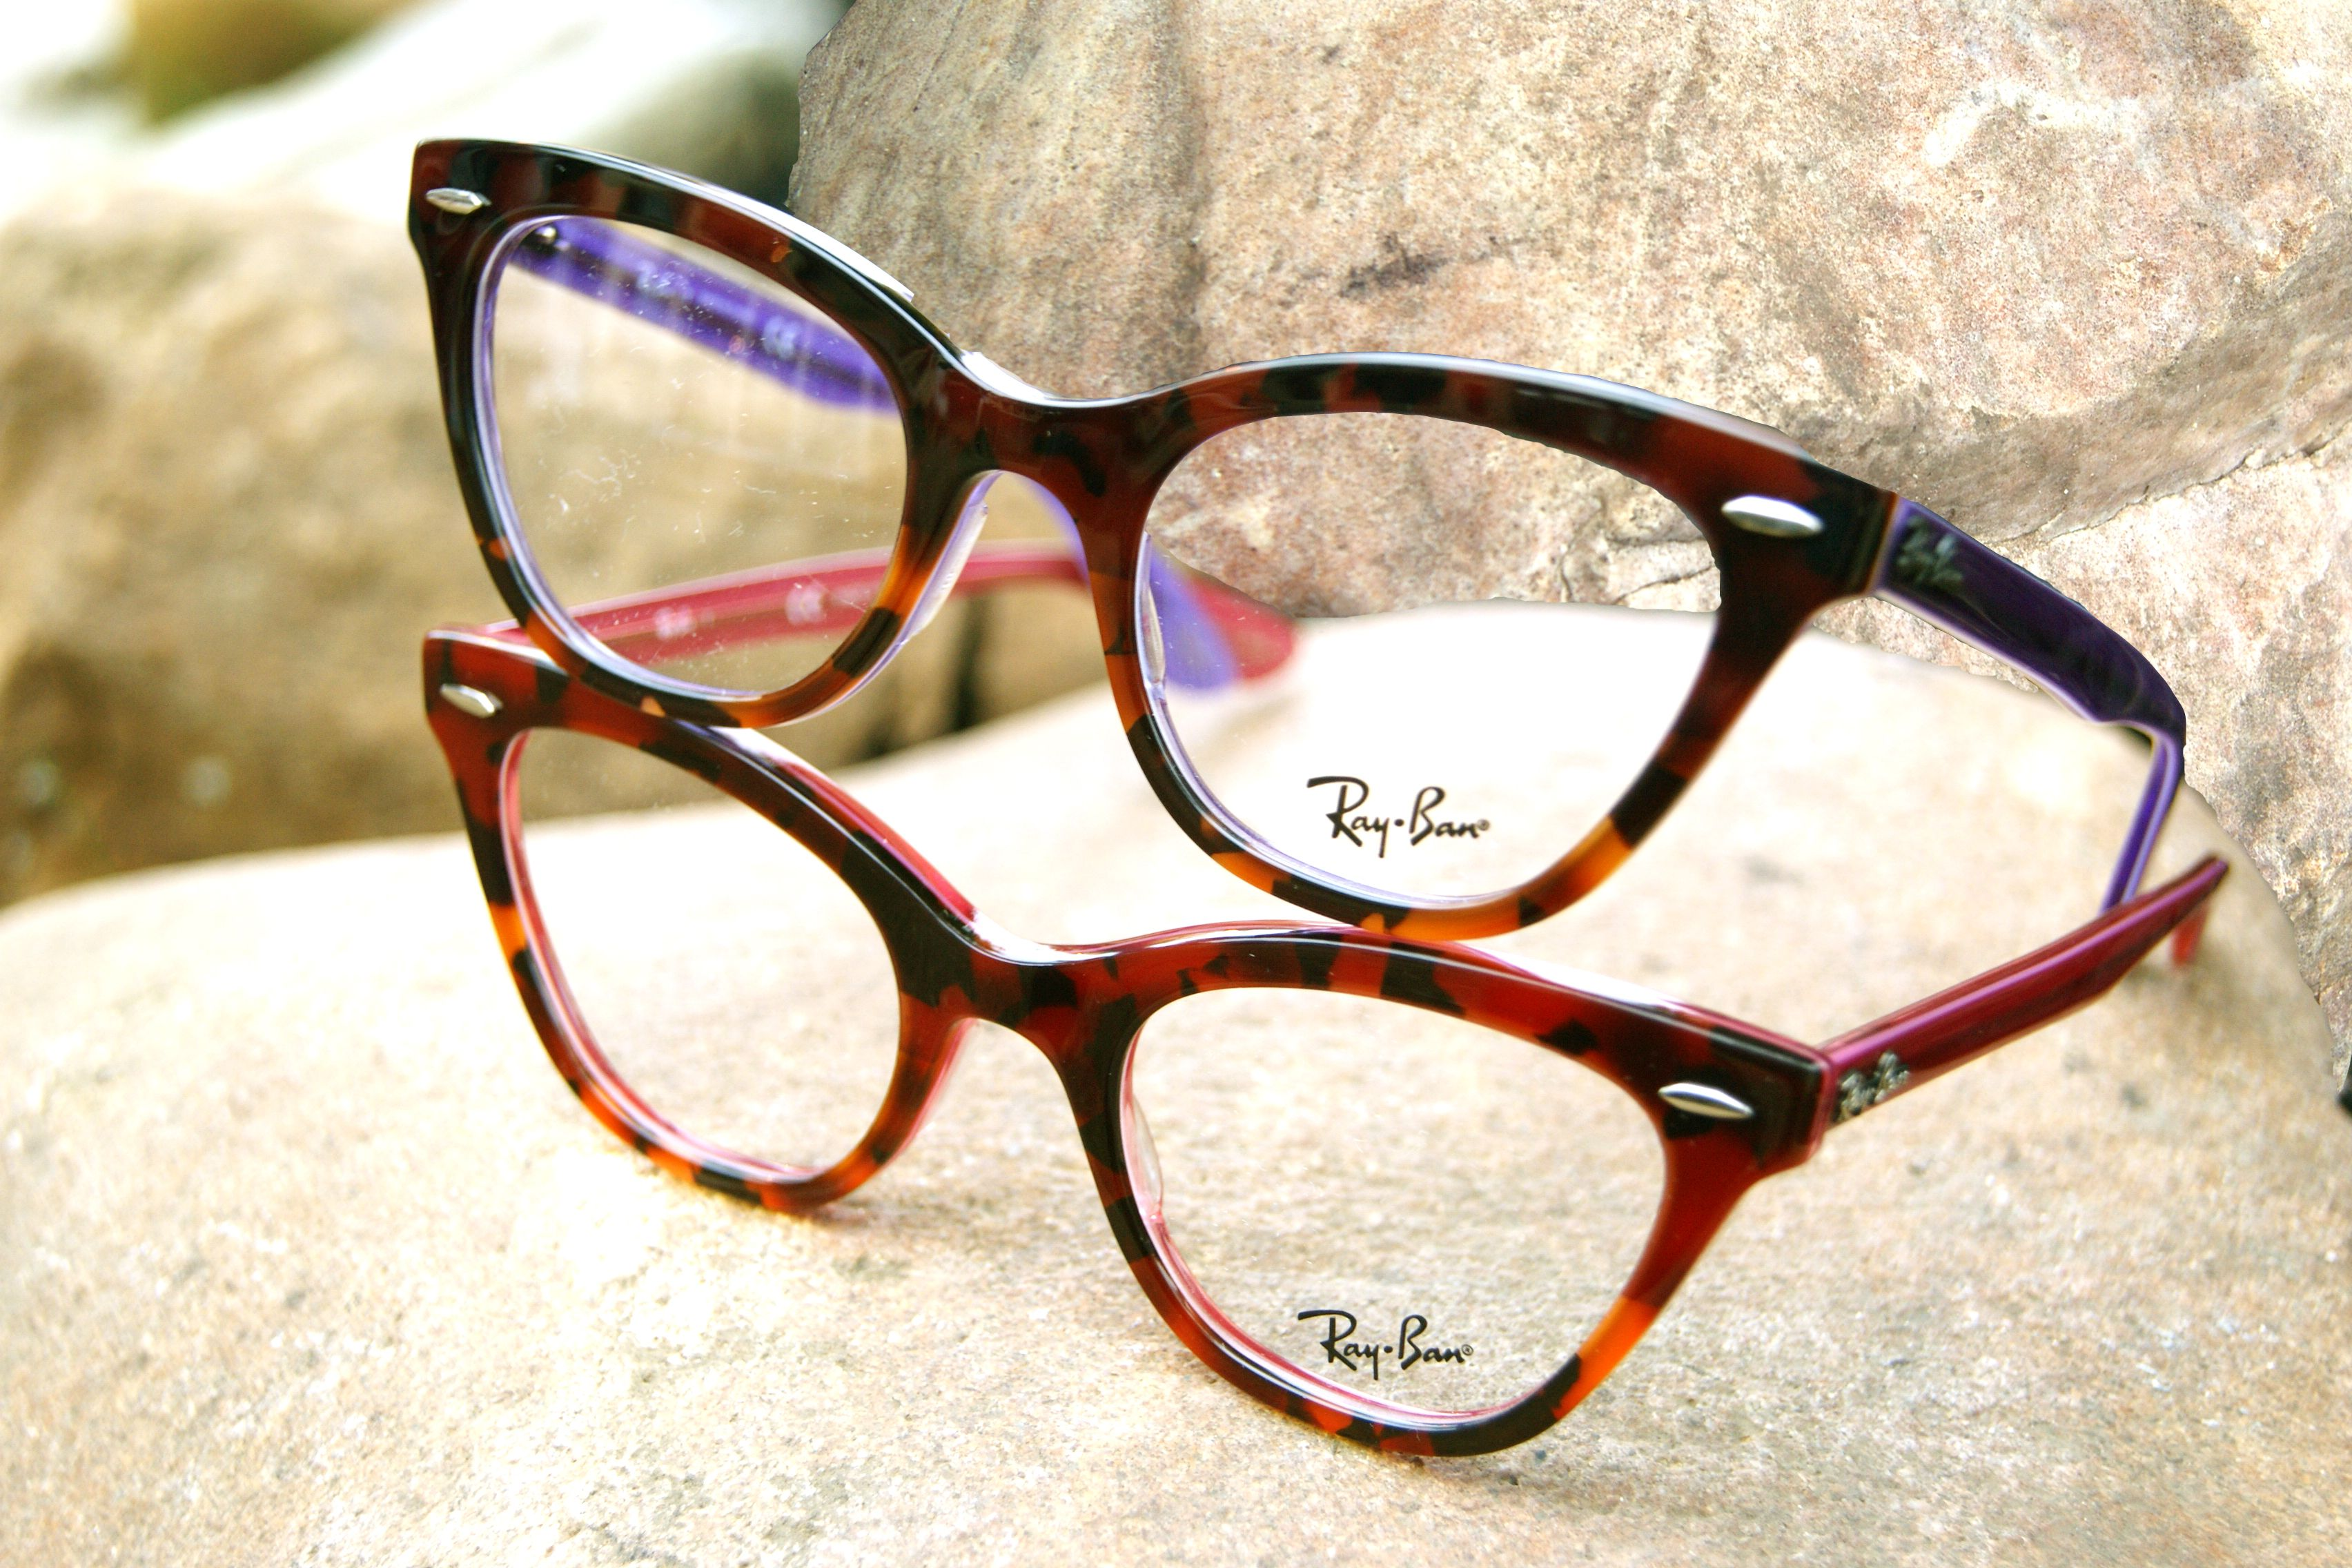 953a66b8265 ... discount 3 ray ban eyeglasses rb 5226 2034 rx5226 rb5226 2034 49mm  latest trends rayban cats